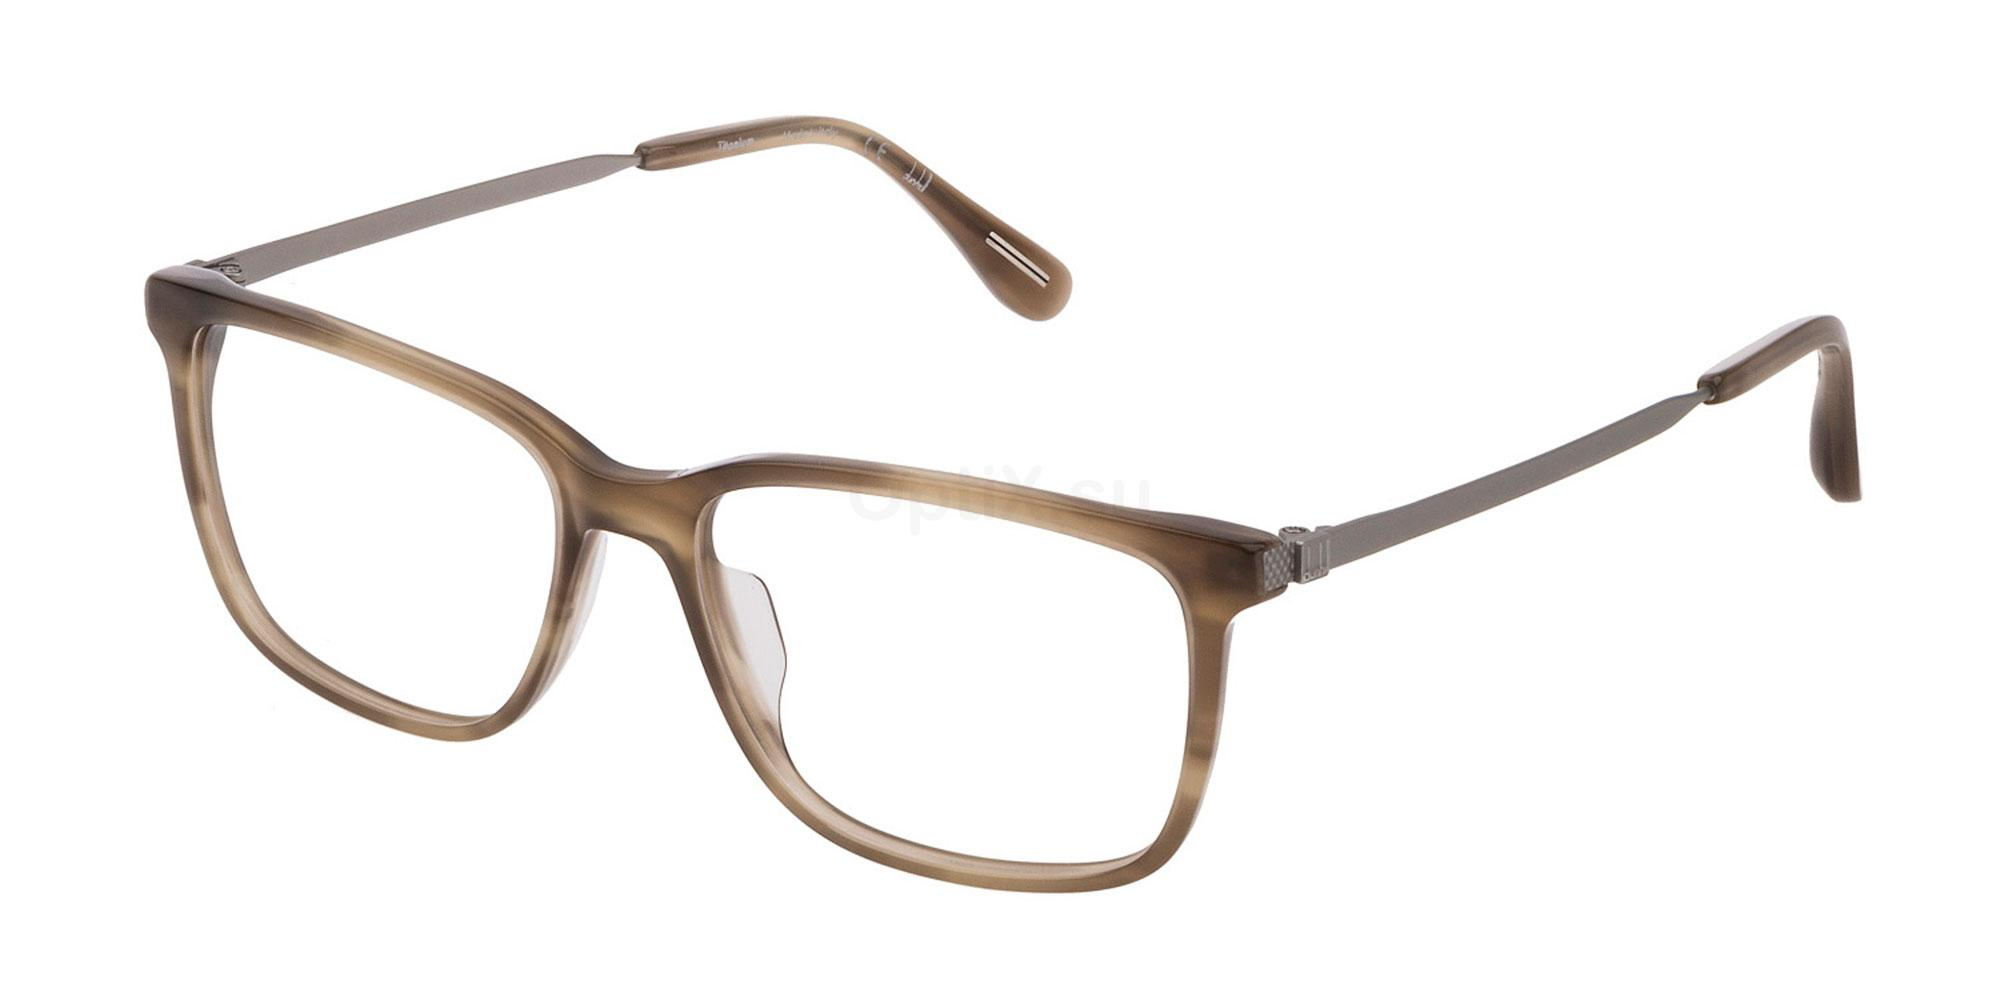 01F9 VDH161M Glasses, Dunhill London